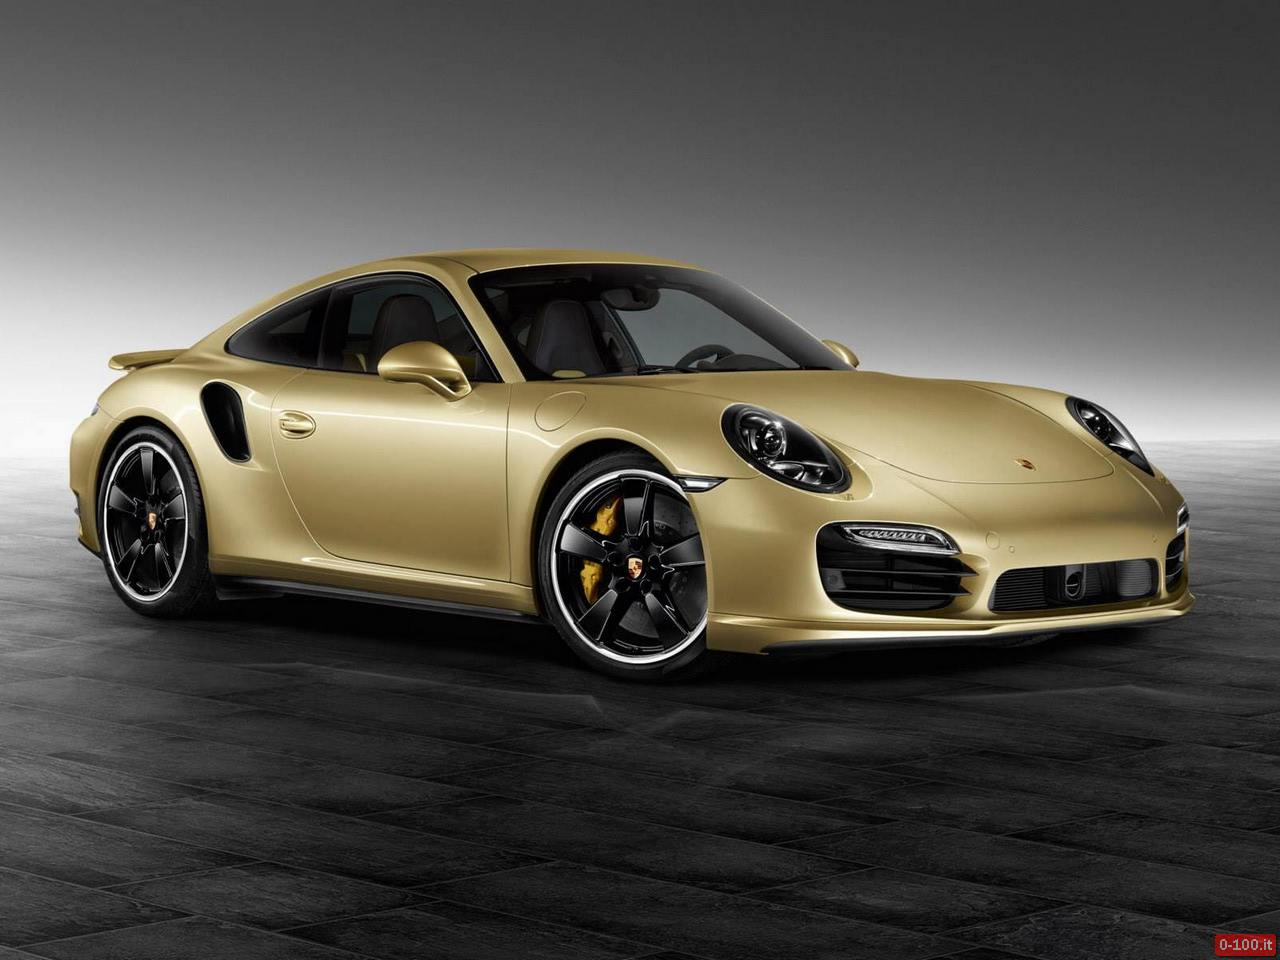 prosche-991-turbo-exclusive-oro-gold-0-100_3